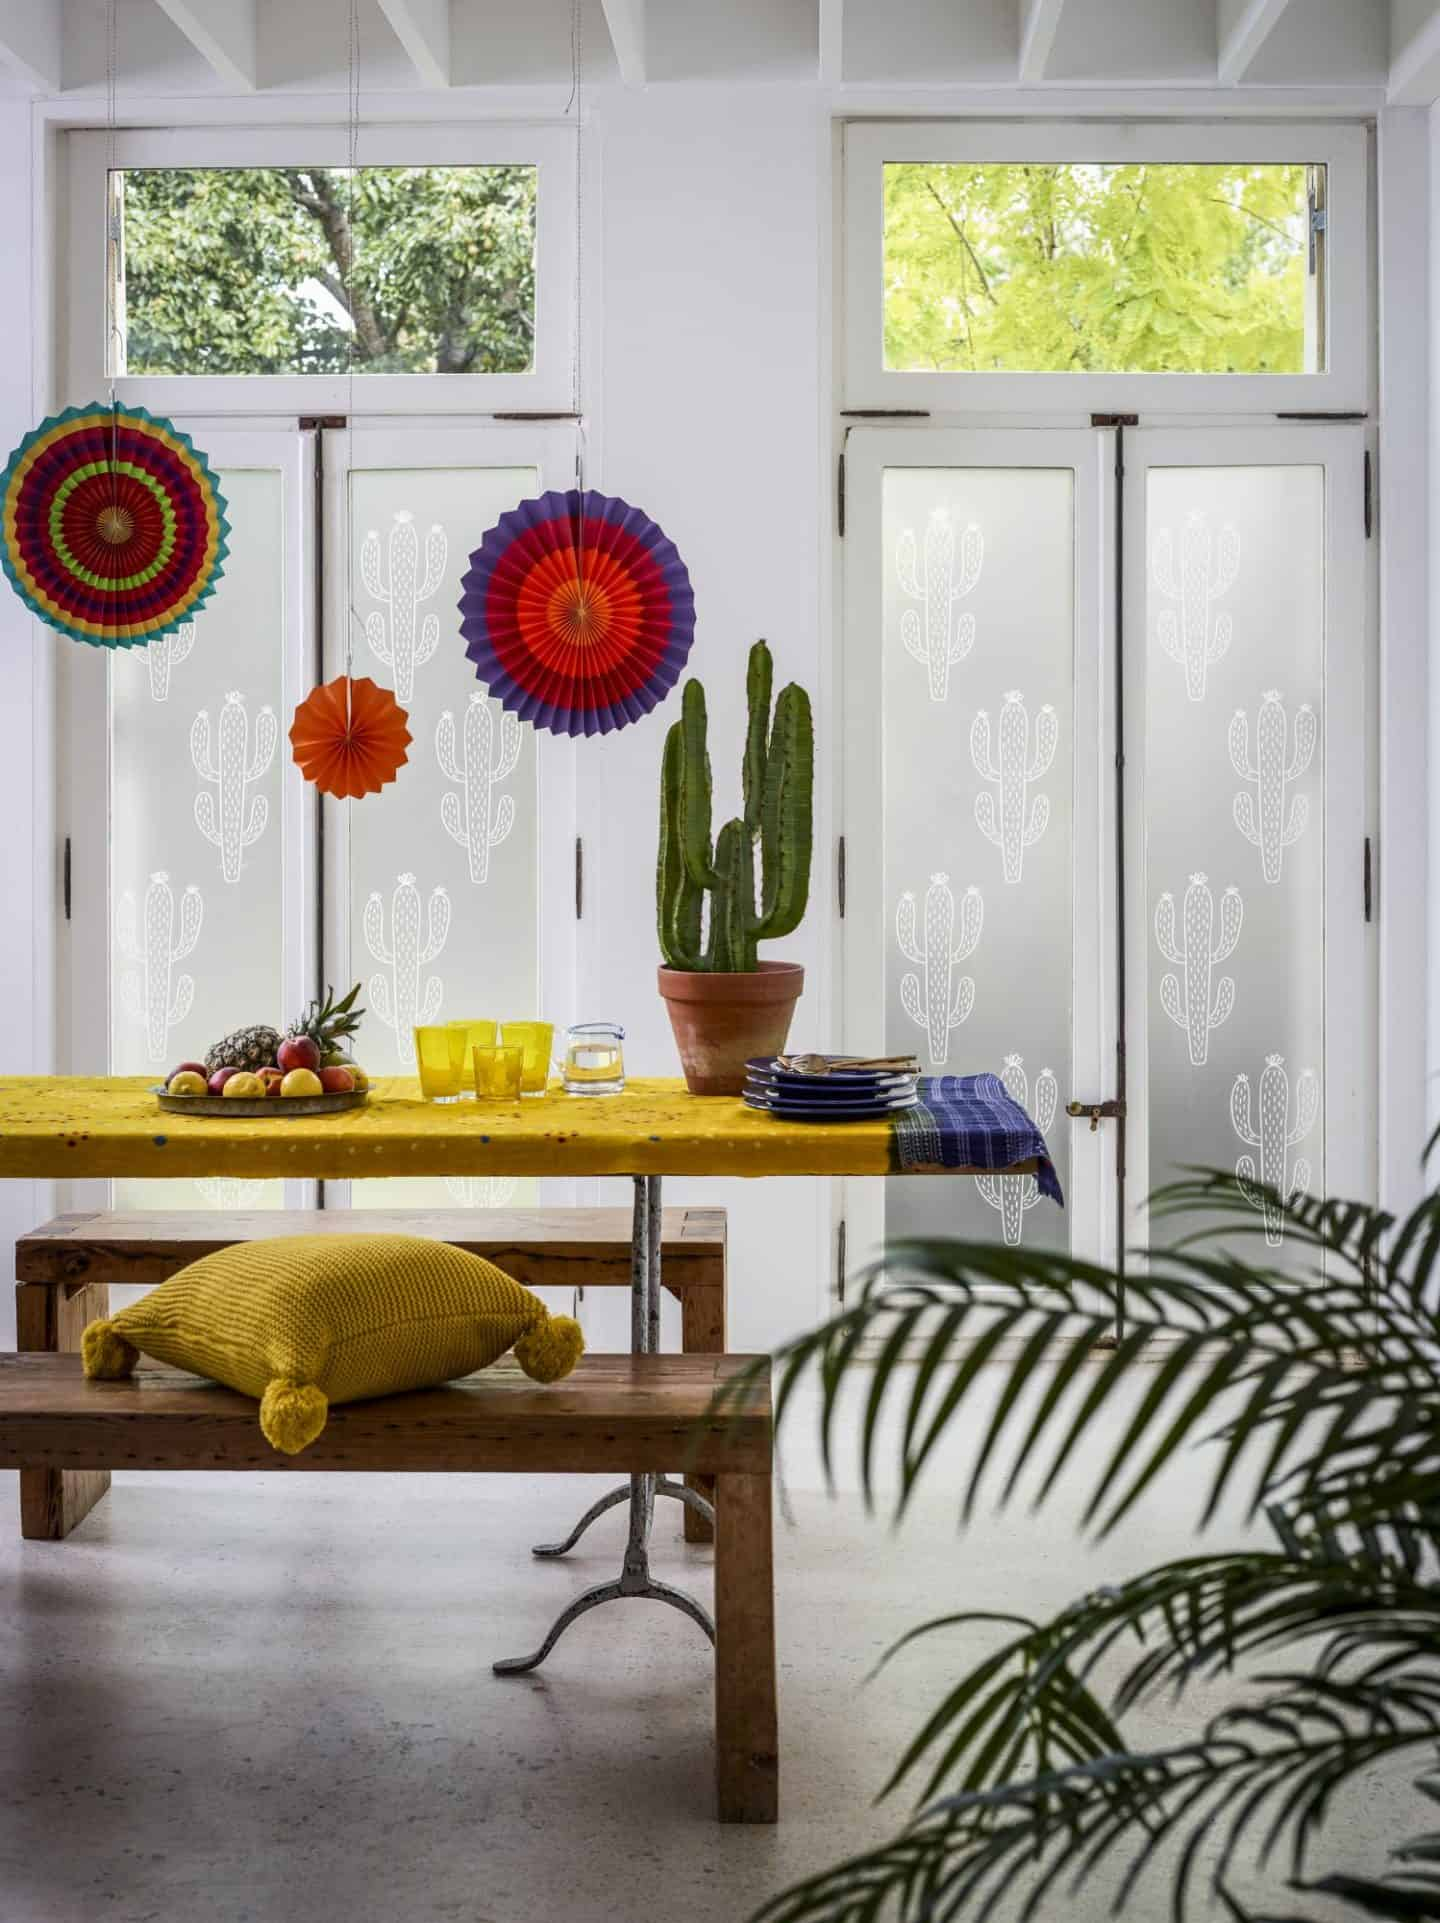 Decorative Window Film -White Printed - Cactus - The Window Film Company